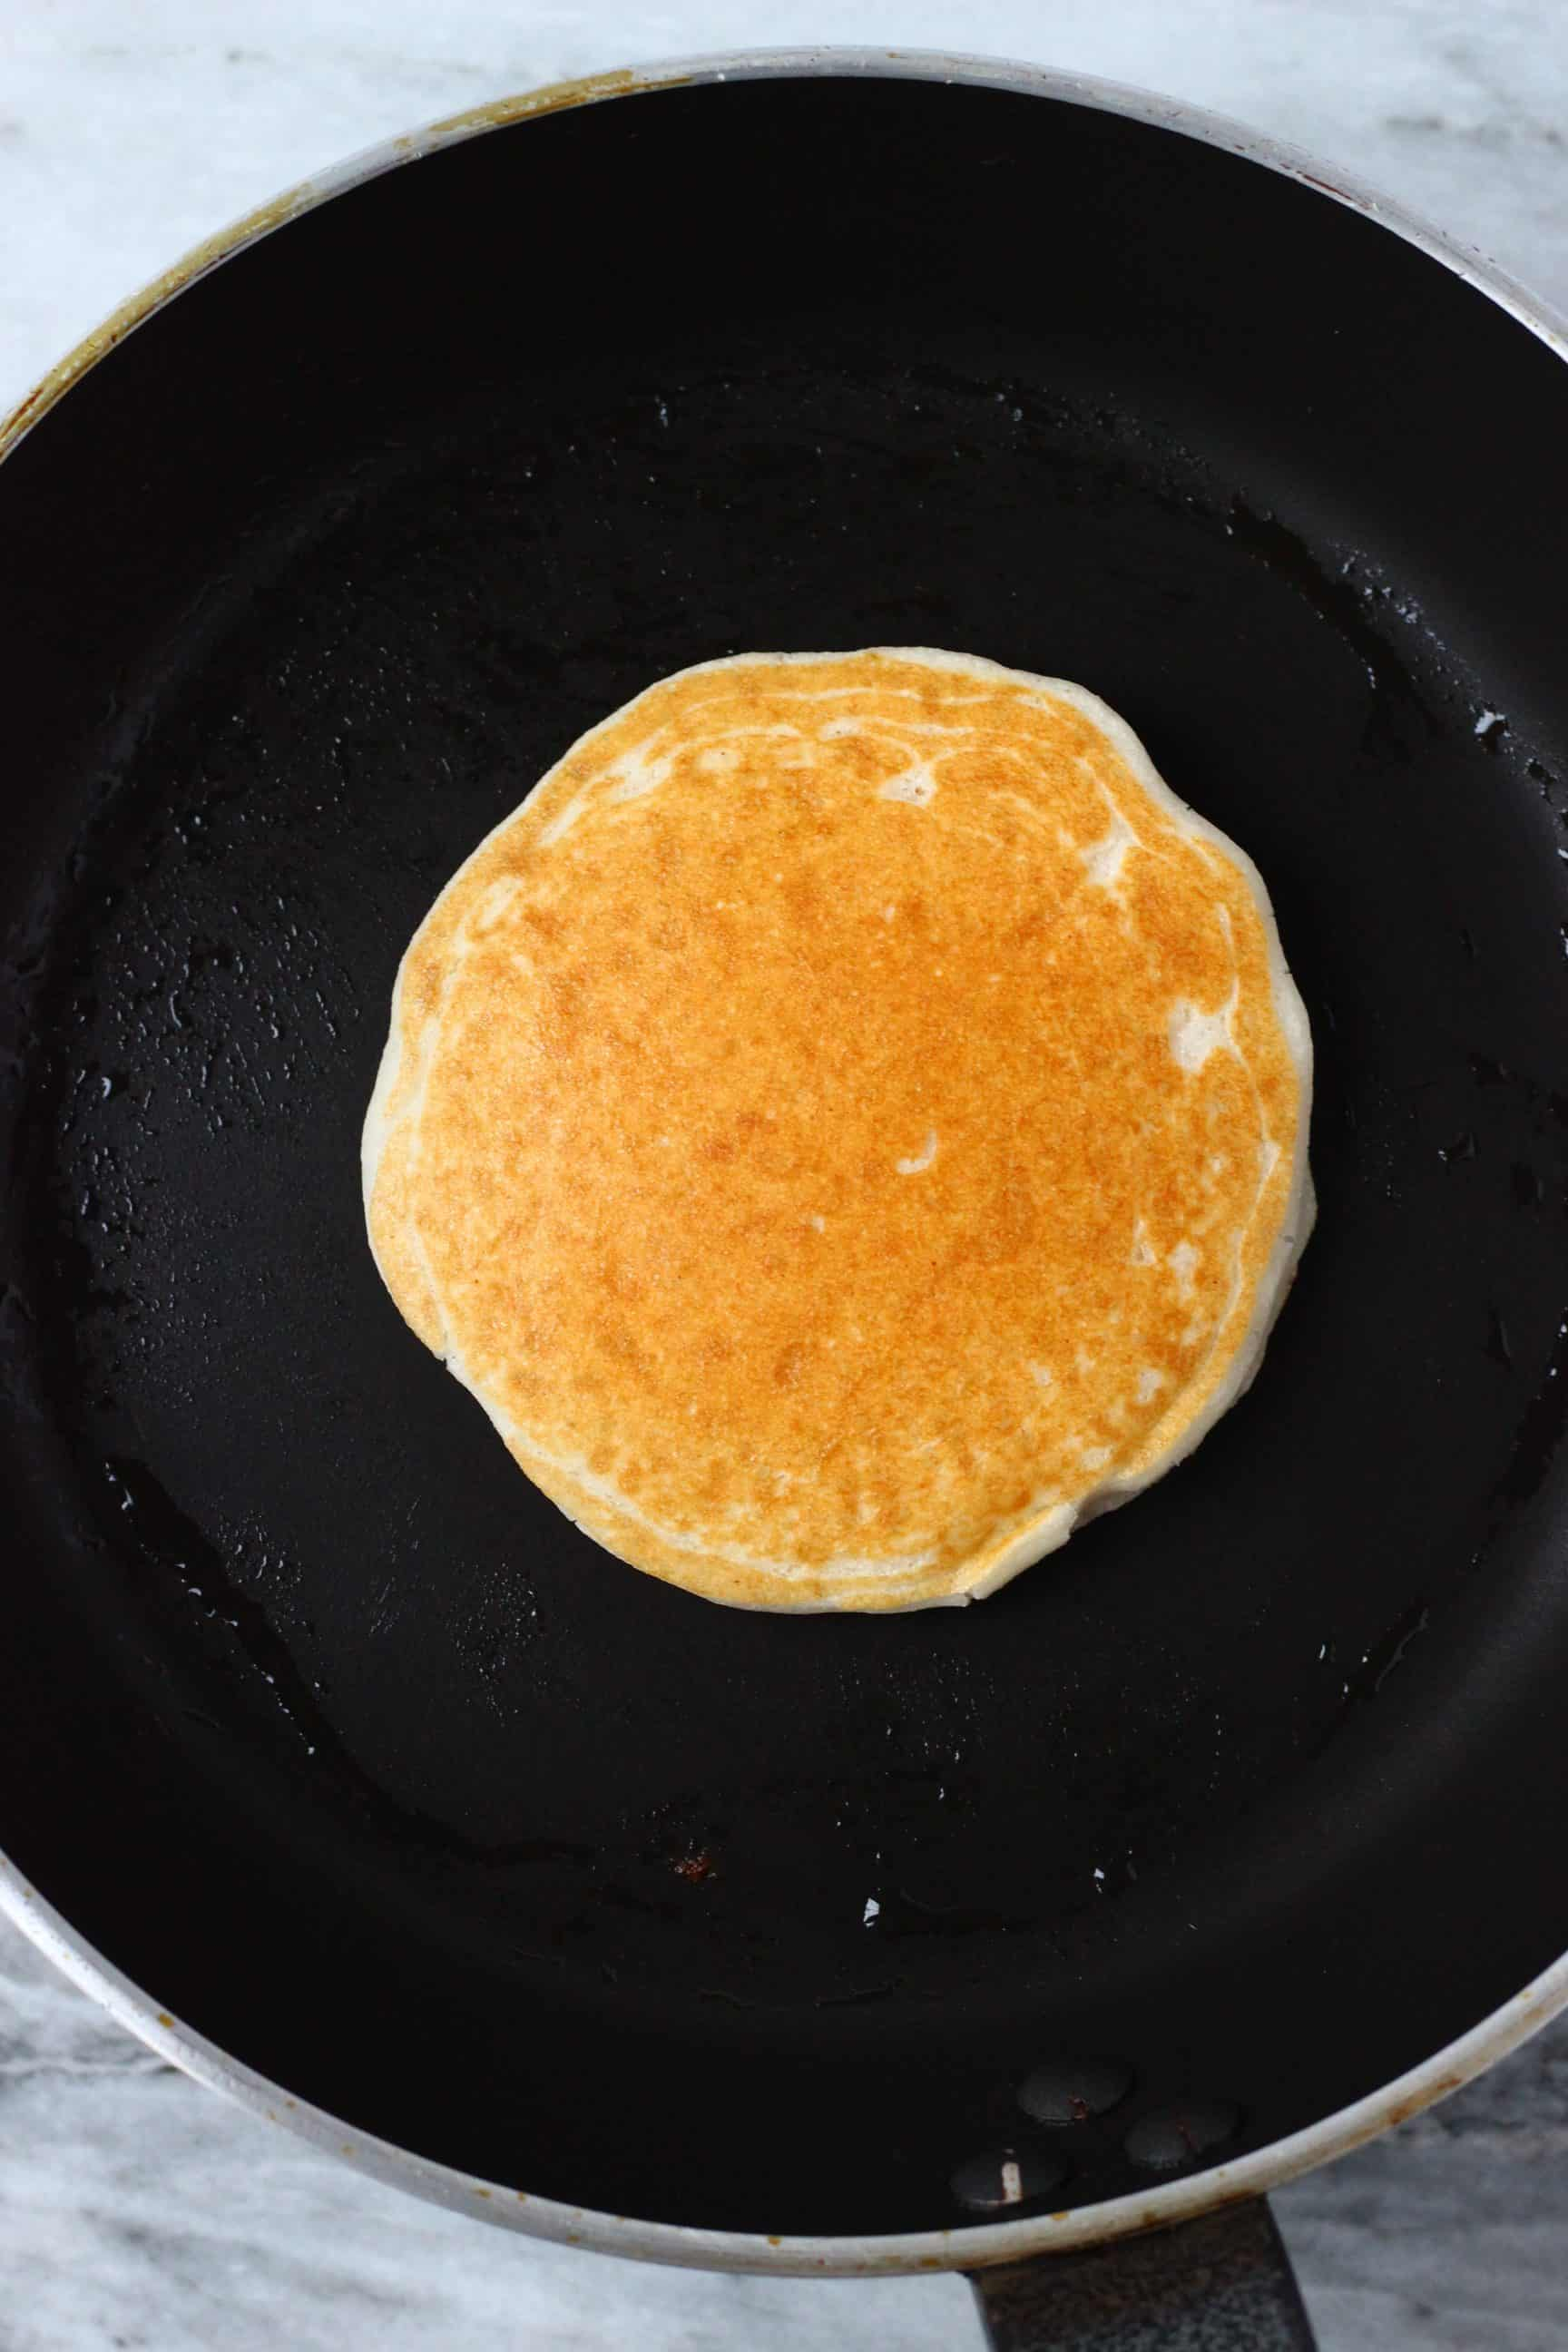 A golden brown vegan coconut flour pancake being cooked in a black frying pan